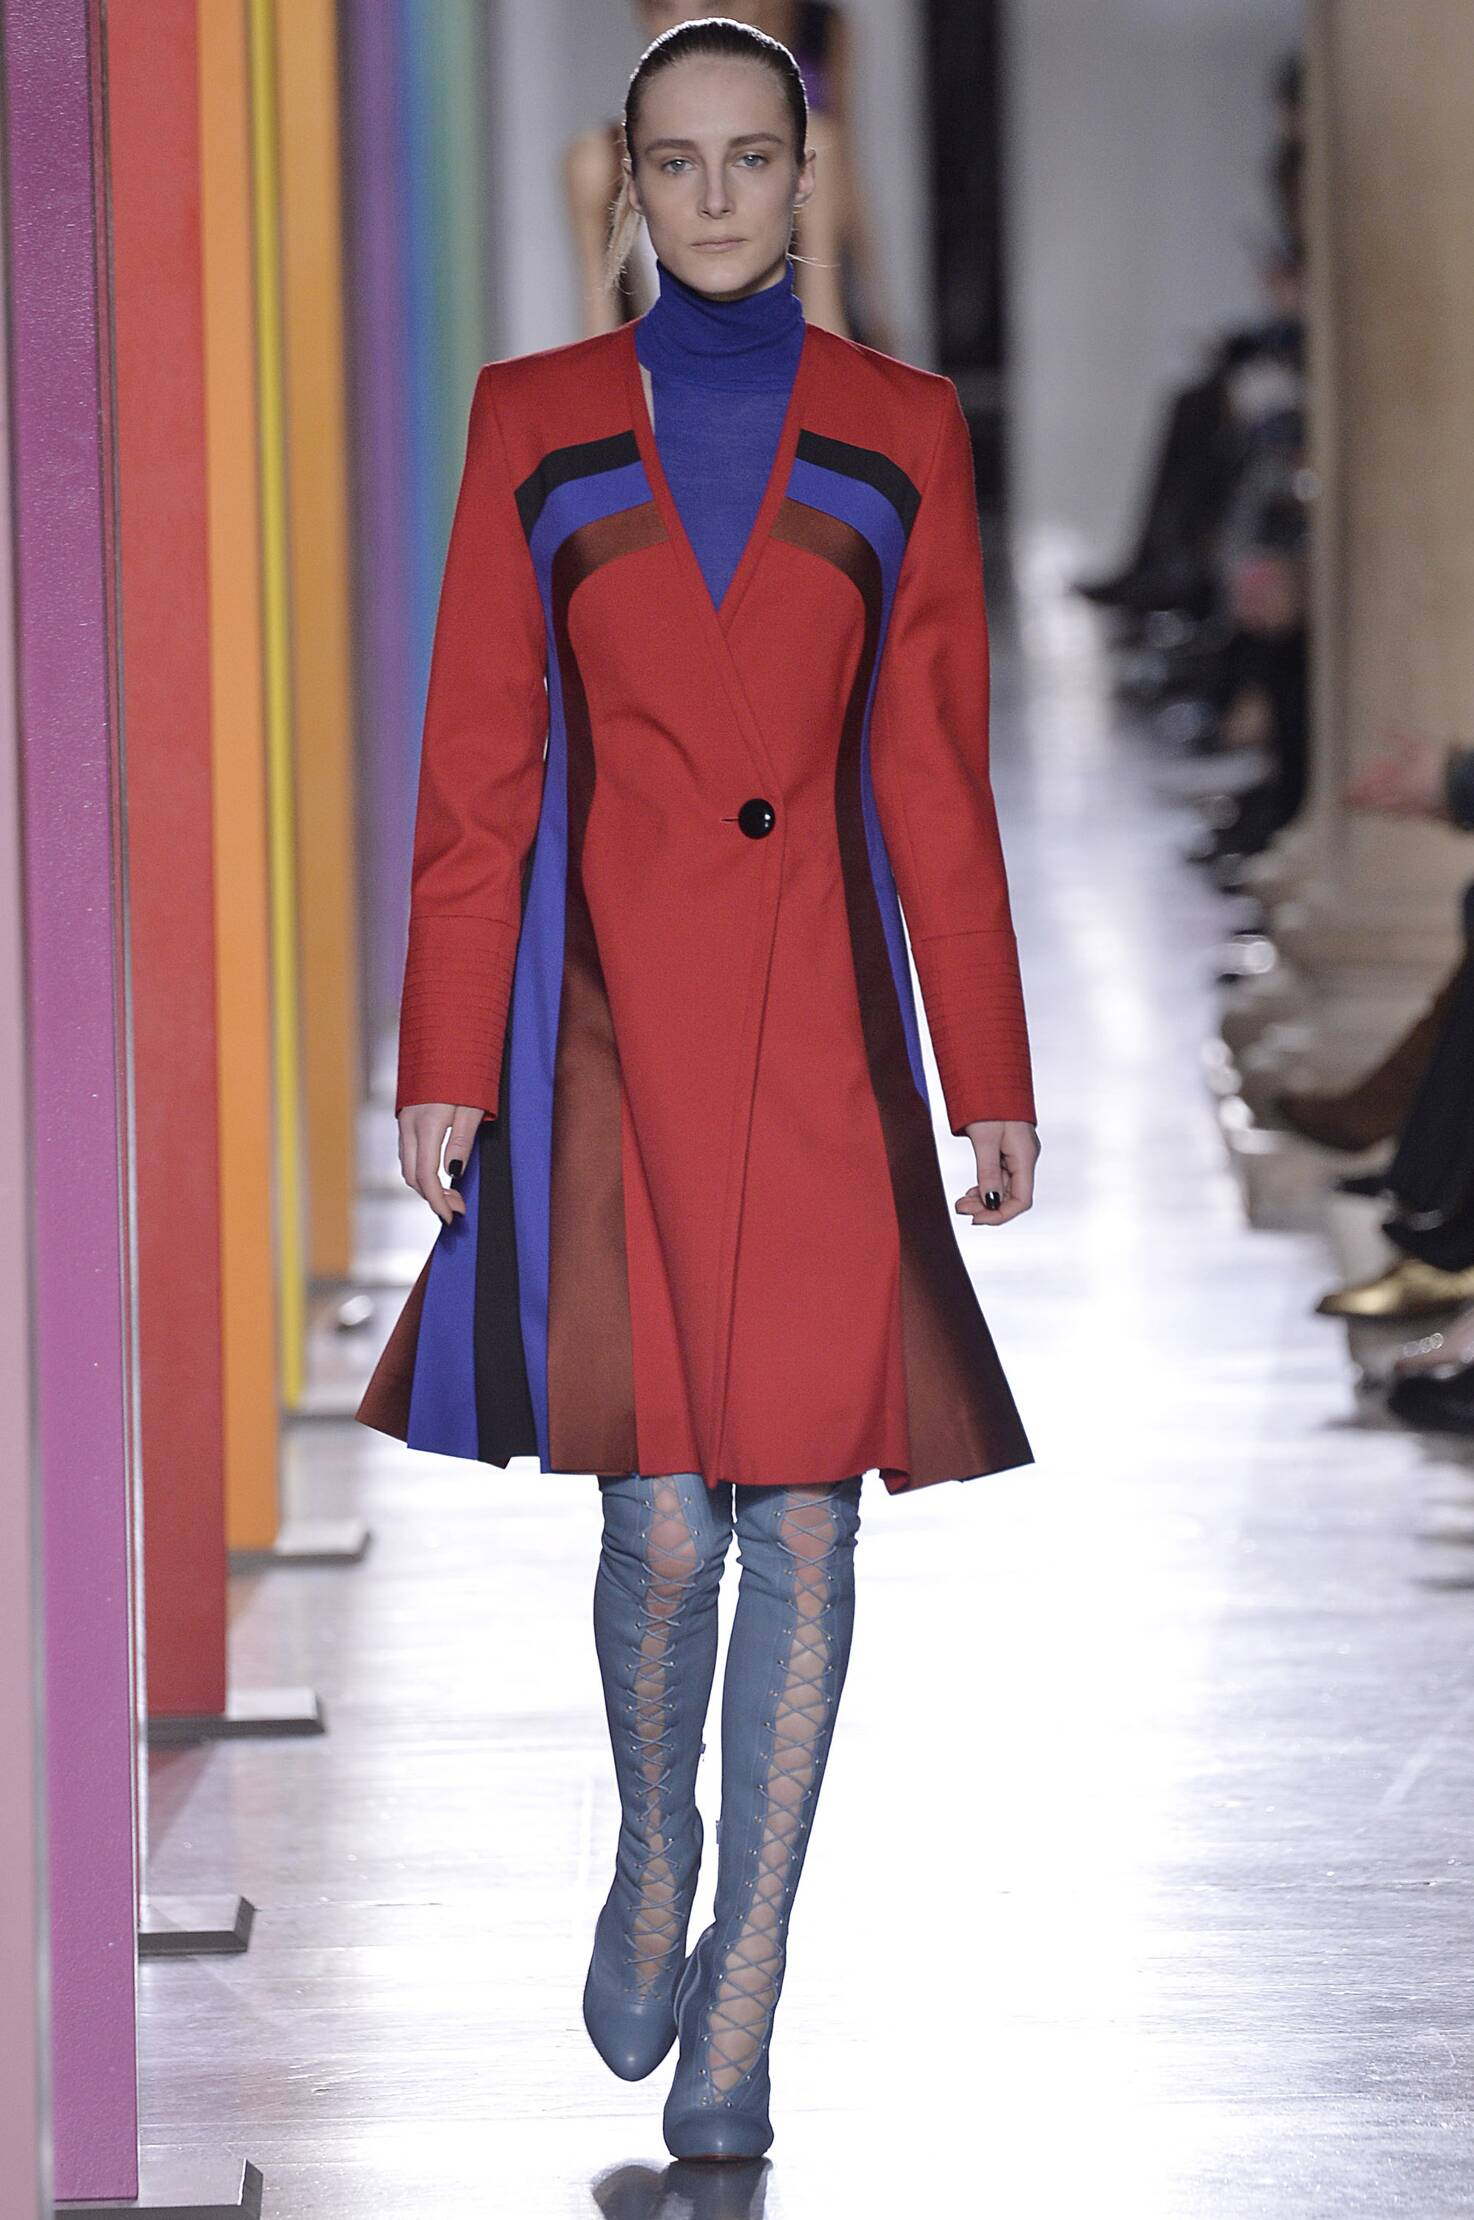 Jonathan Saunders Collection Fashion Show FW 2015 2016